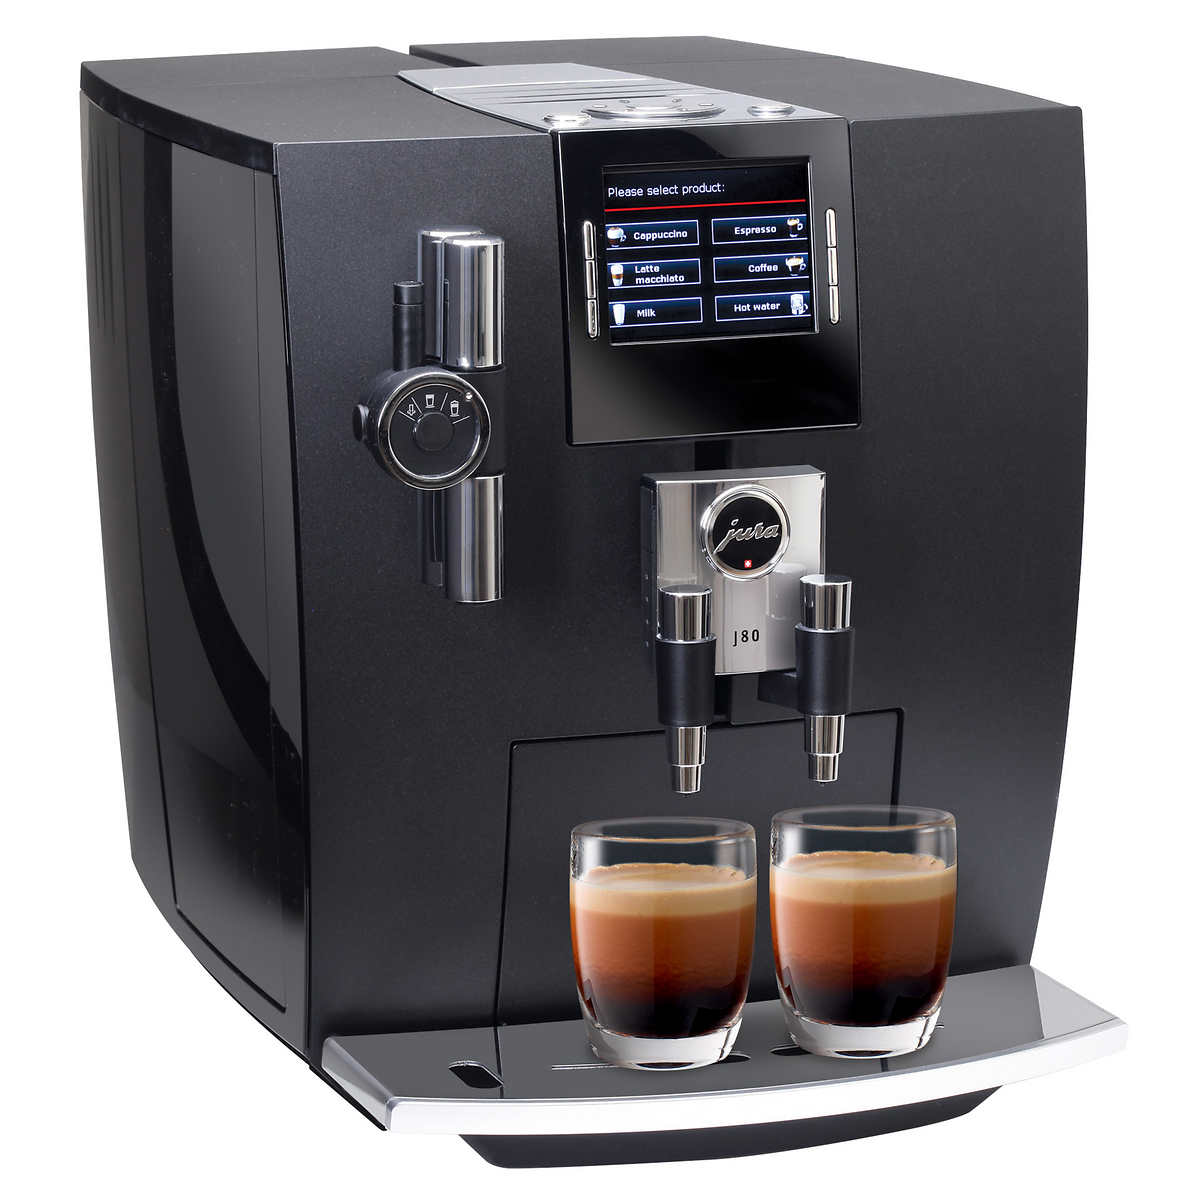 Jura J80 Automatic Coffee Center With Five Adjustable Coffee Strengths eBay